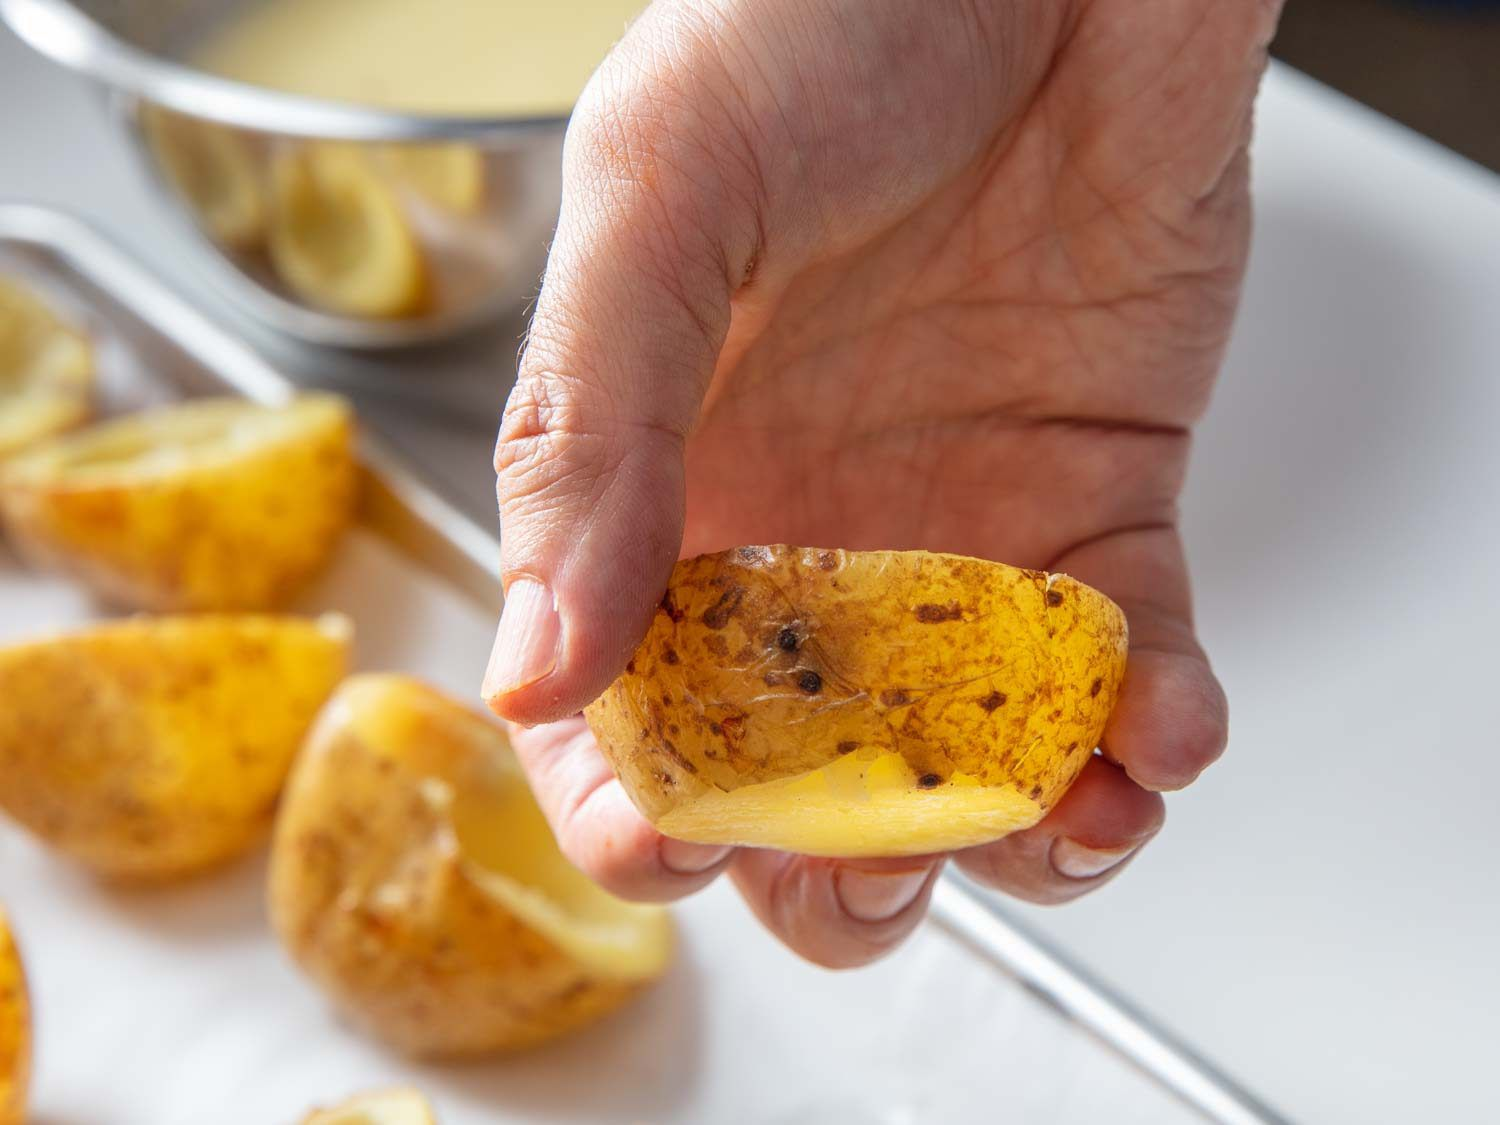 If you want your potato skin cups to sit flat, you can level off their bottoms, as shown in the example in this photo.